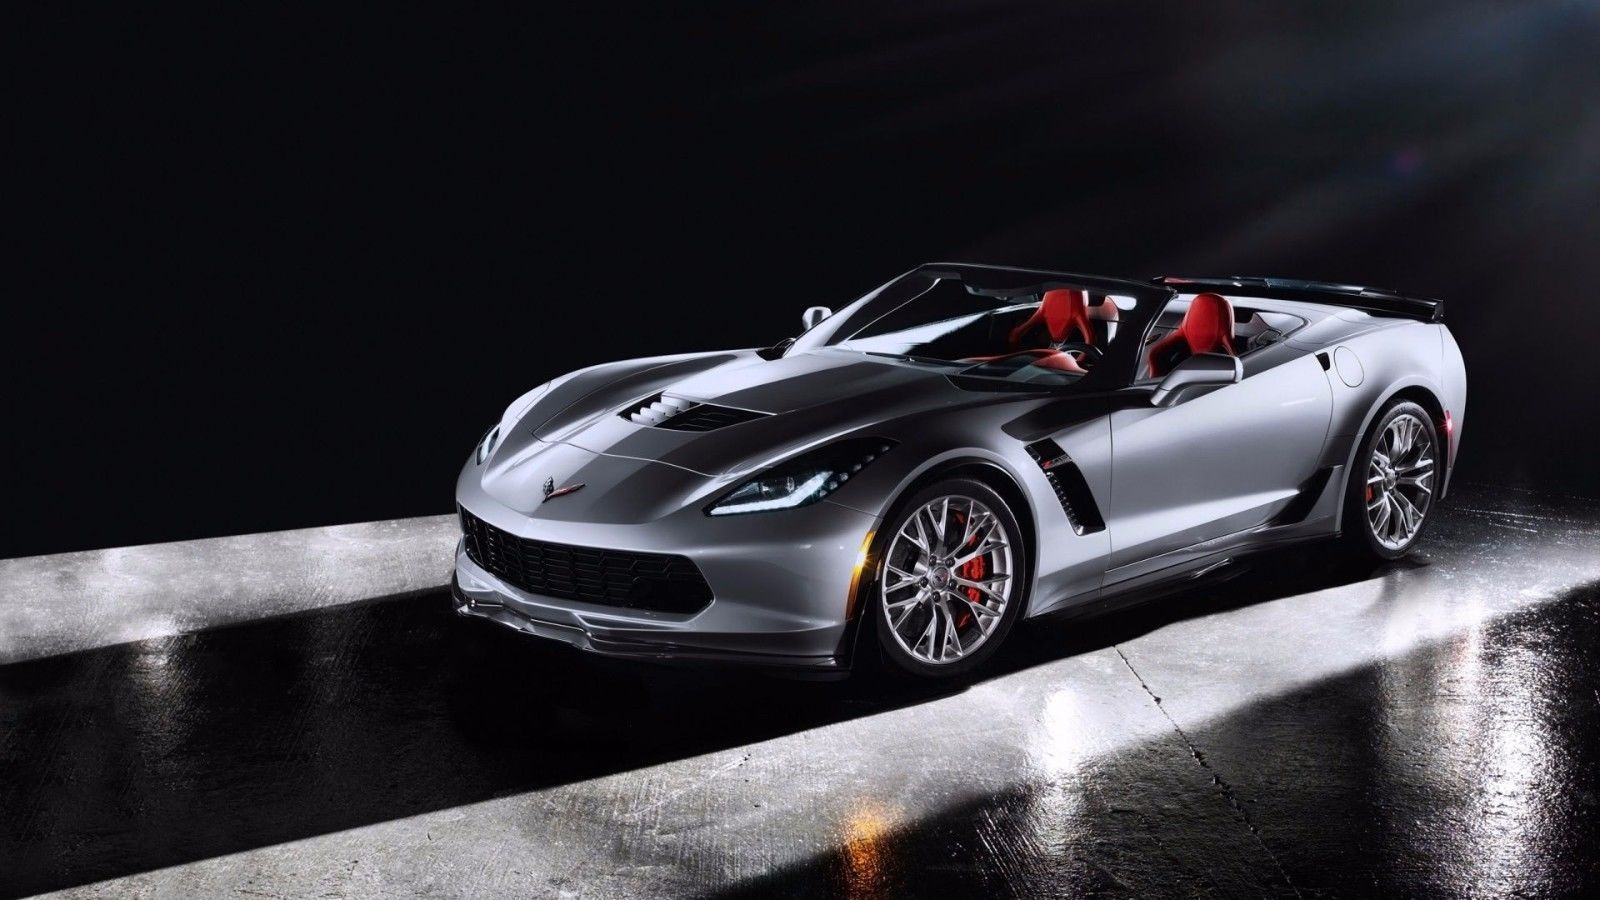 Primary image for 2016 Chevrolet Corvette Sting 24X36 inch poster, silver, sports car,